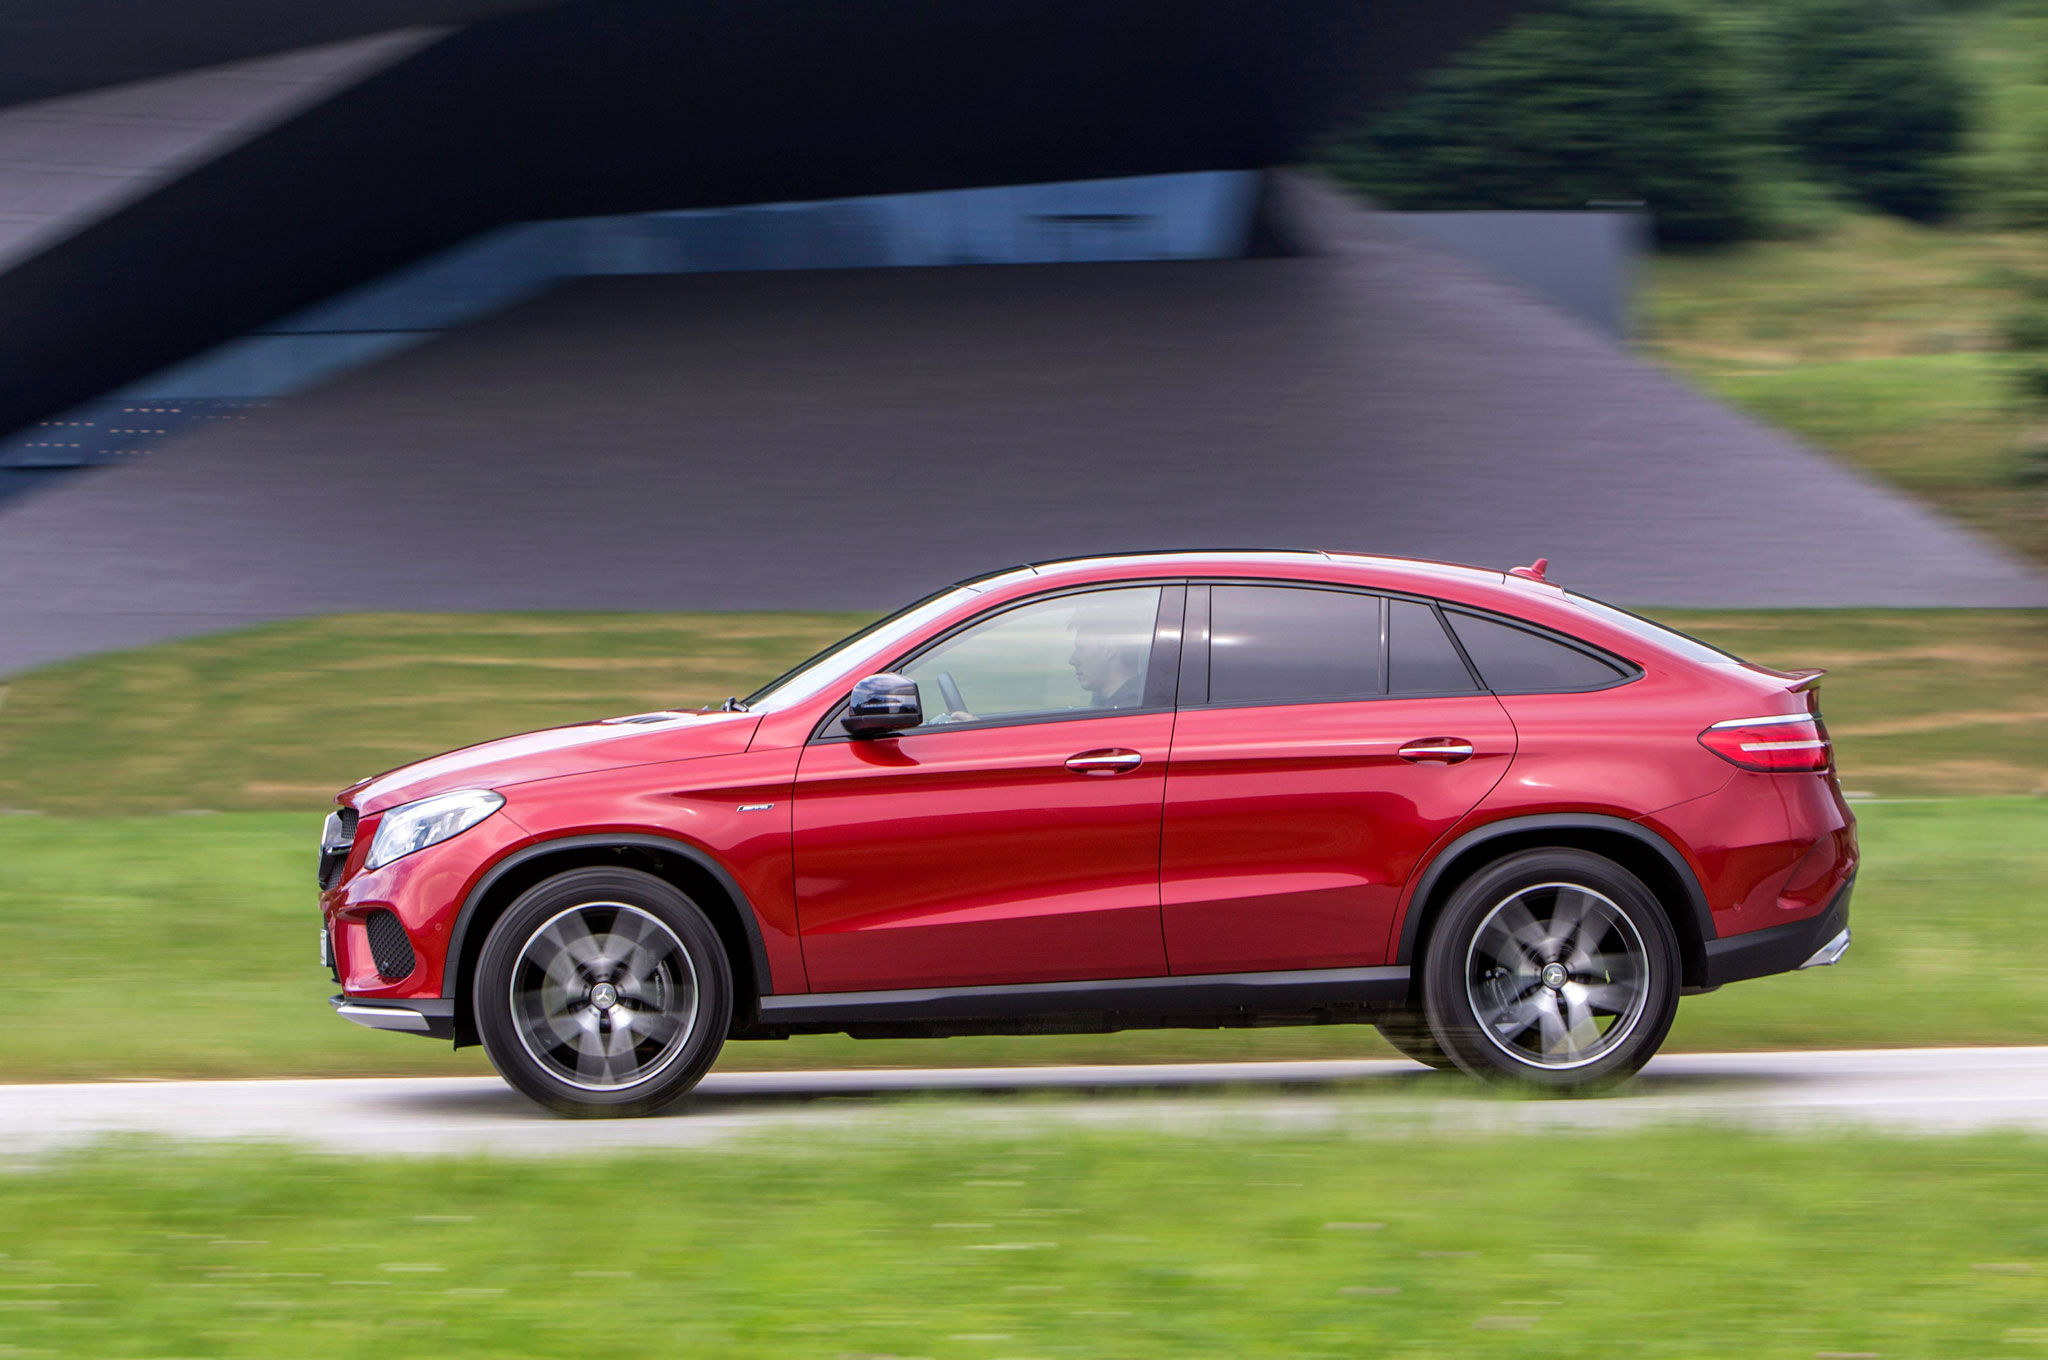 https://st.automobilemag.com/uploads/sites/11/2015/06/2016-Mercedes-Benz-GLE450-AMG-4Matic-Coupe-side-profile-in-motion-04.jpg